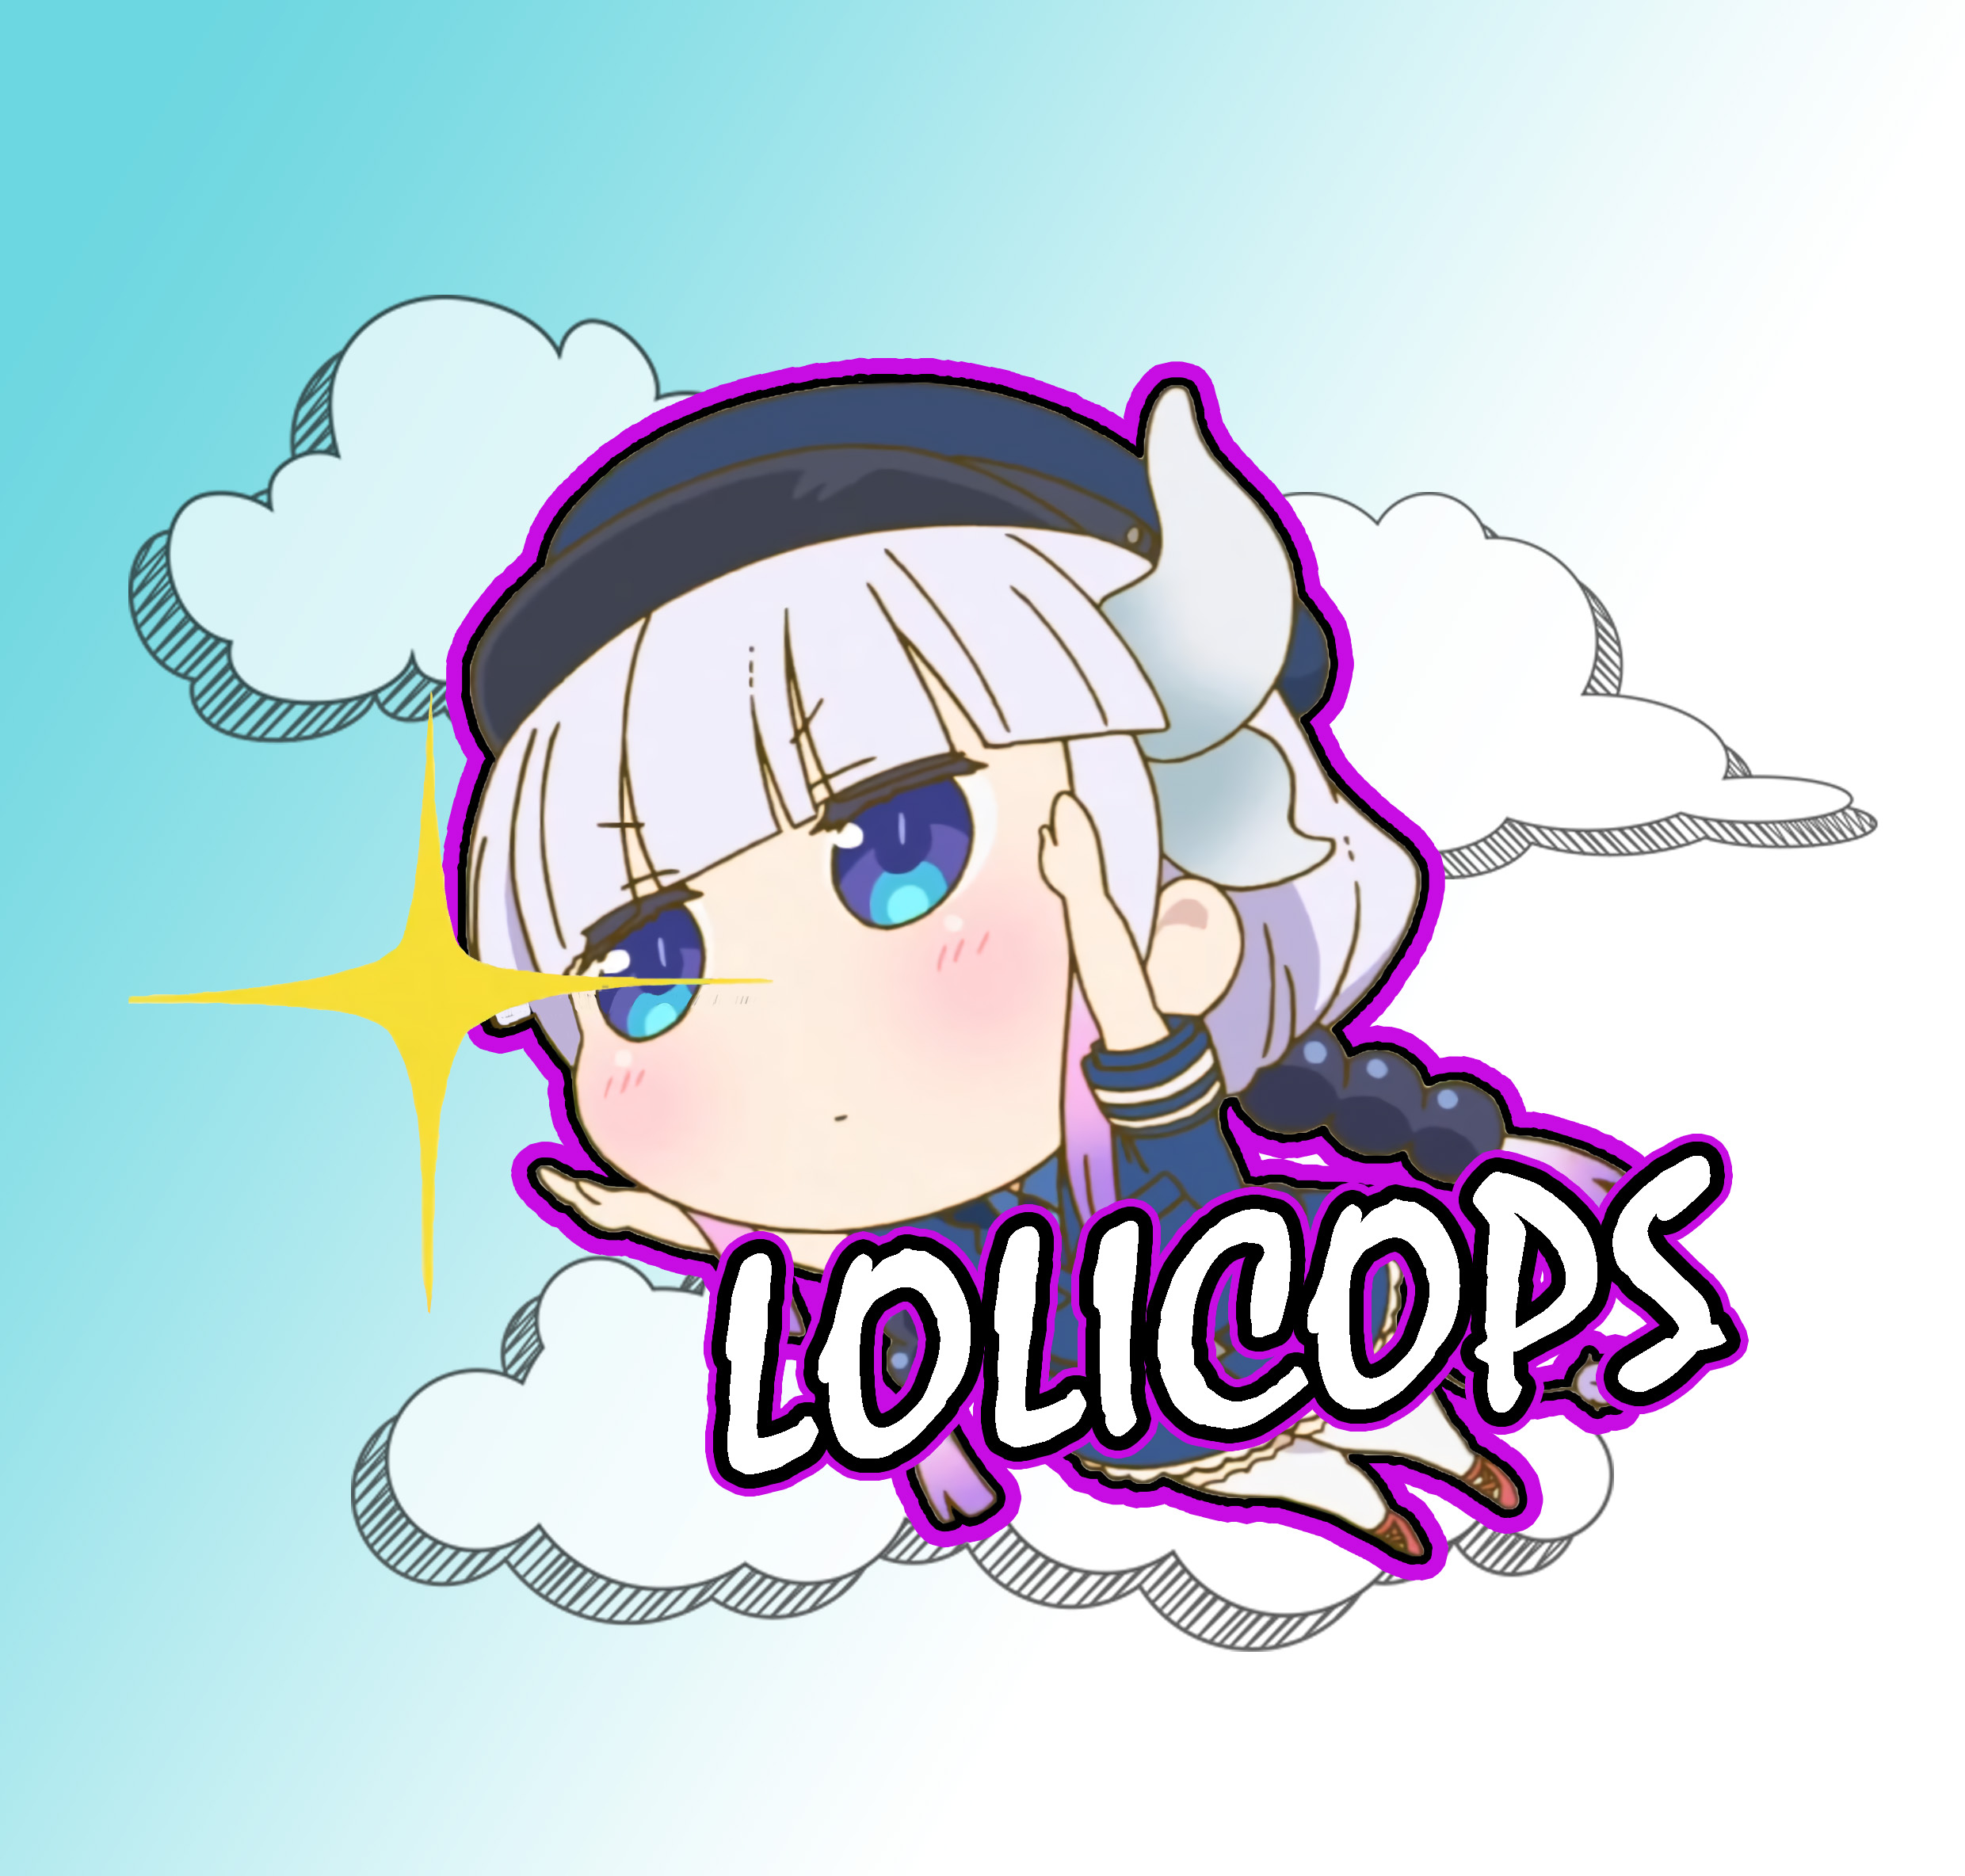 Lolicops